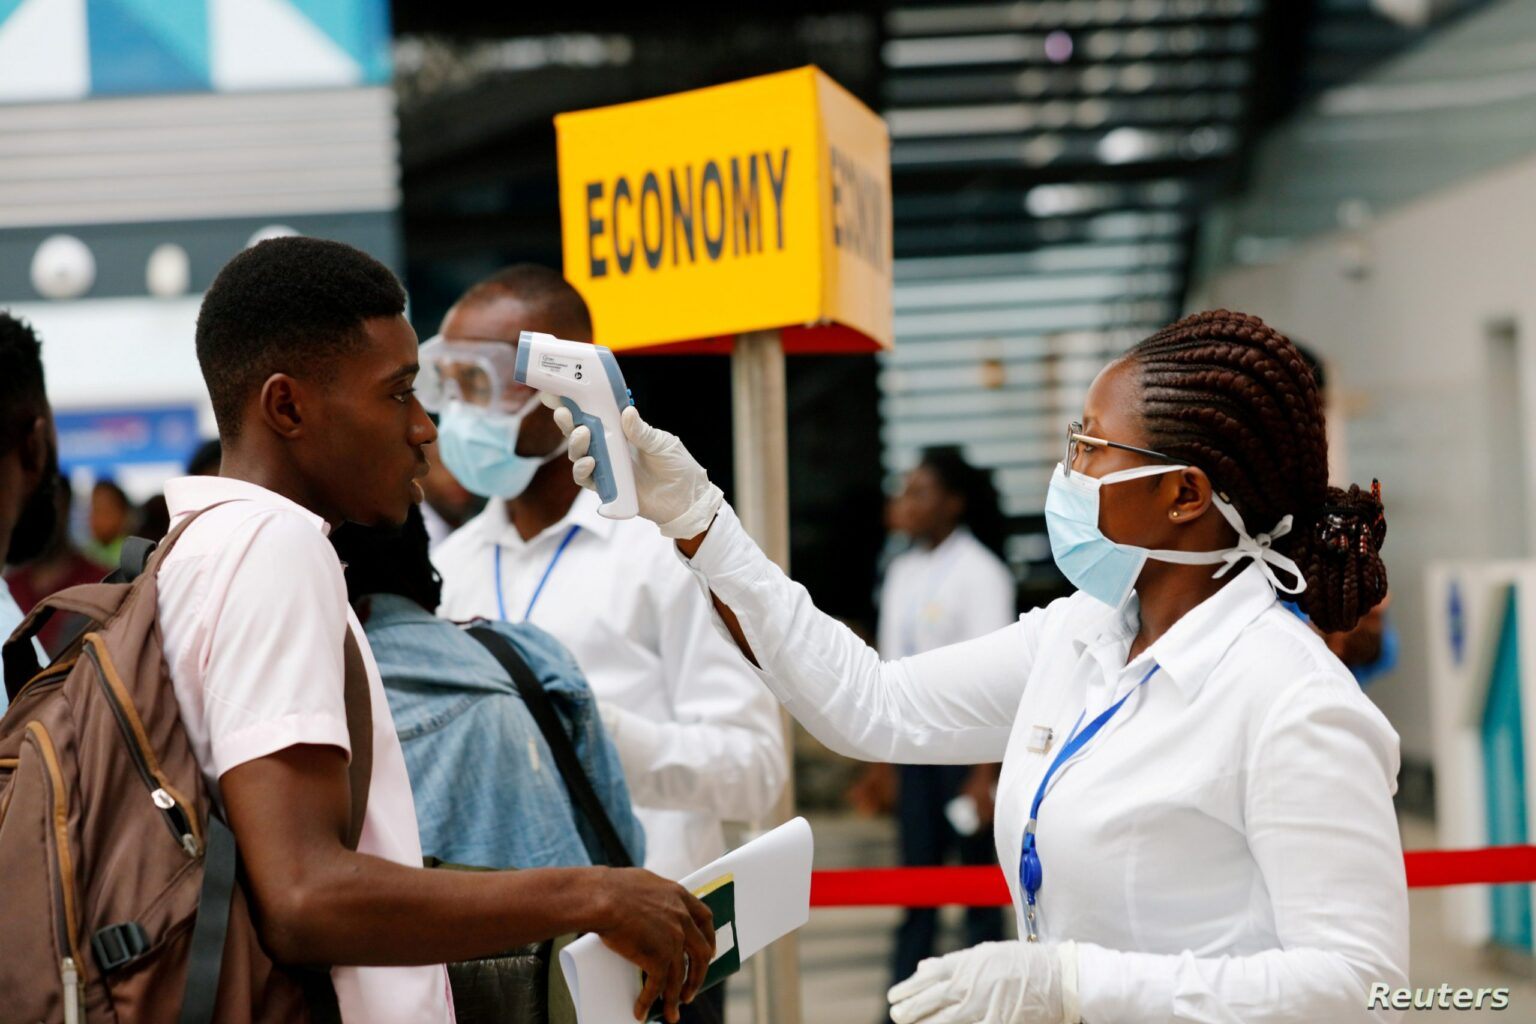 The African Finance Corporation will double its loans to the black continent to fight the Coronavirus and its effects.